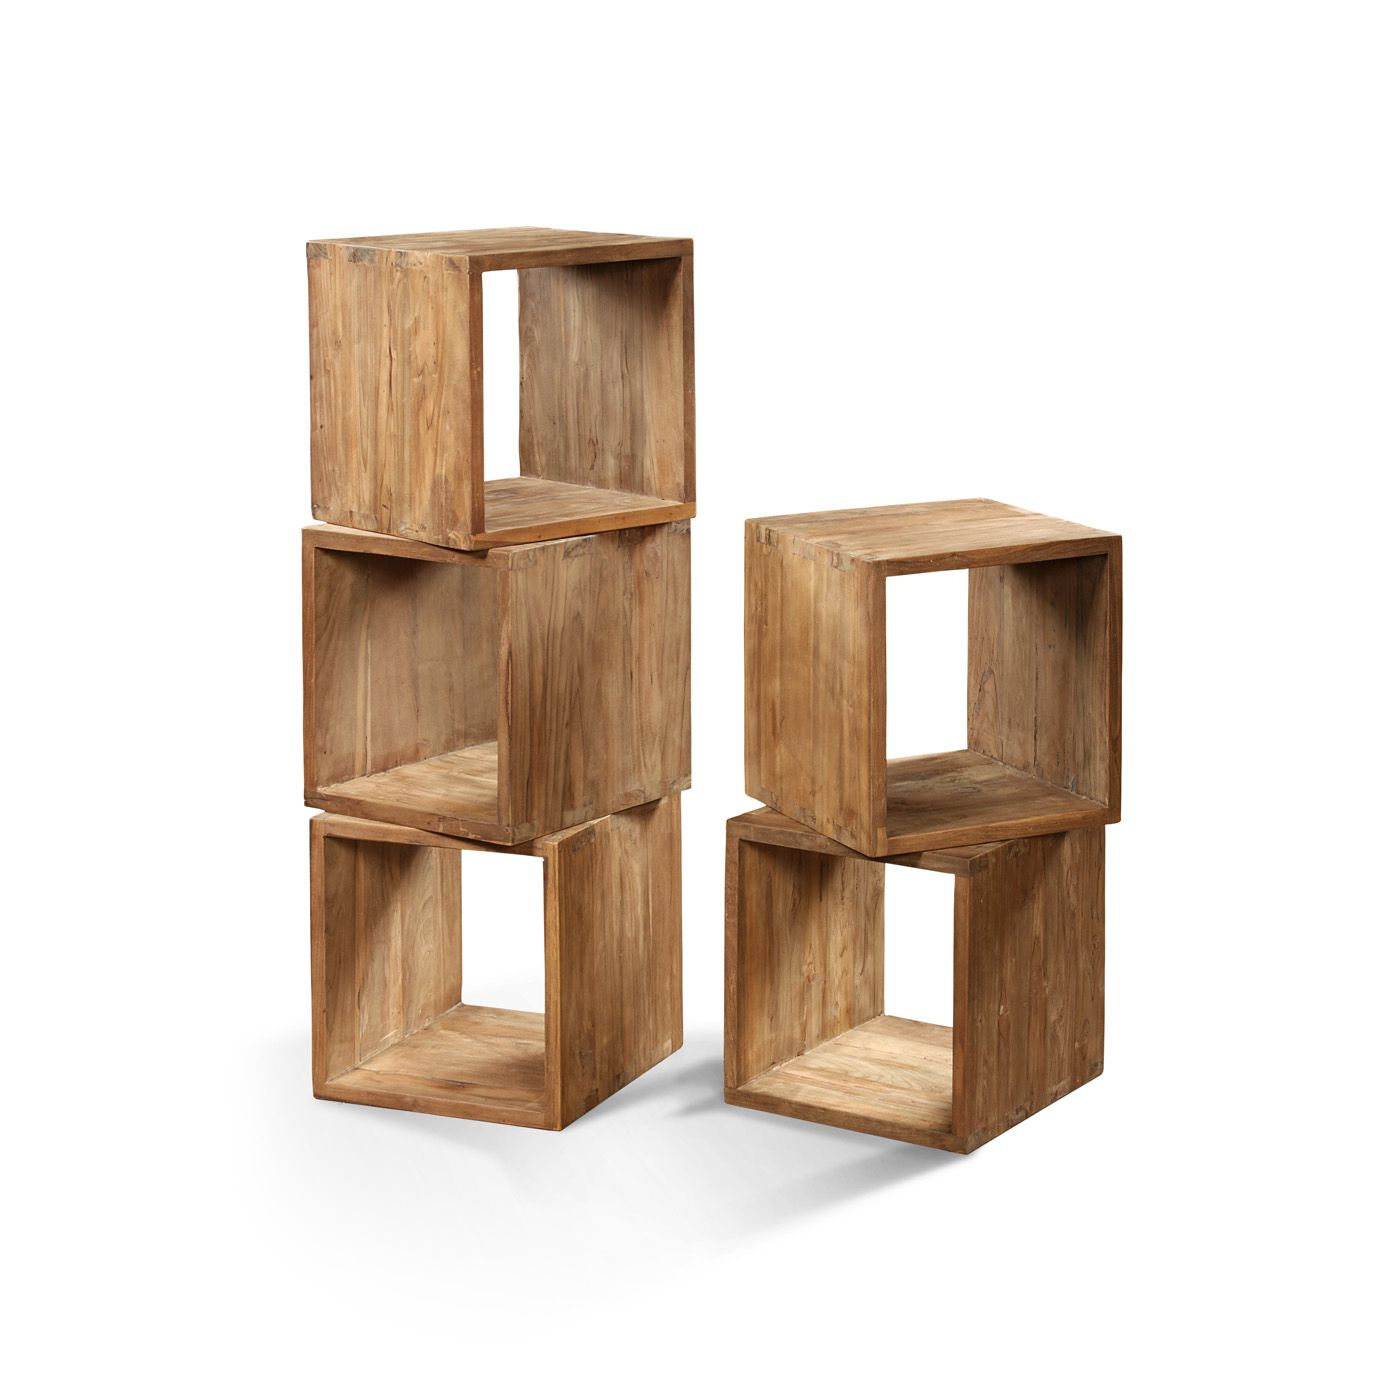 Wood Storage Cubes Cube Furniture Cube Storage Shelves Cube